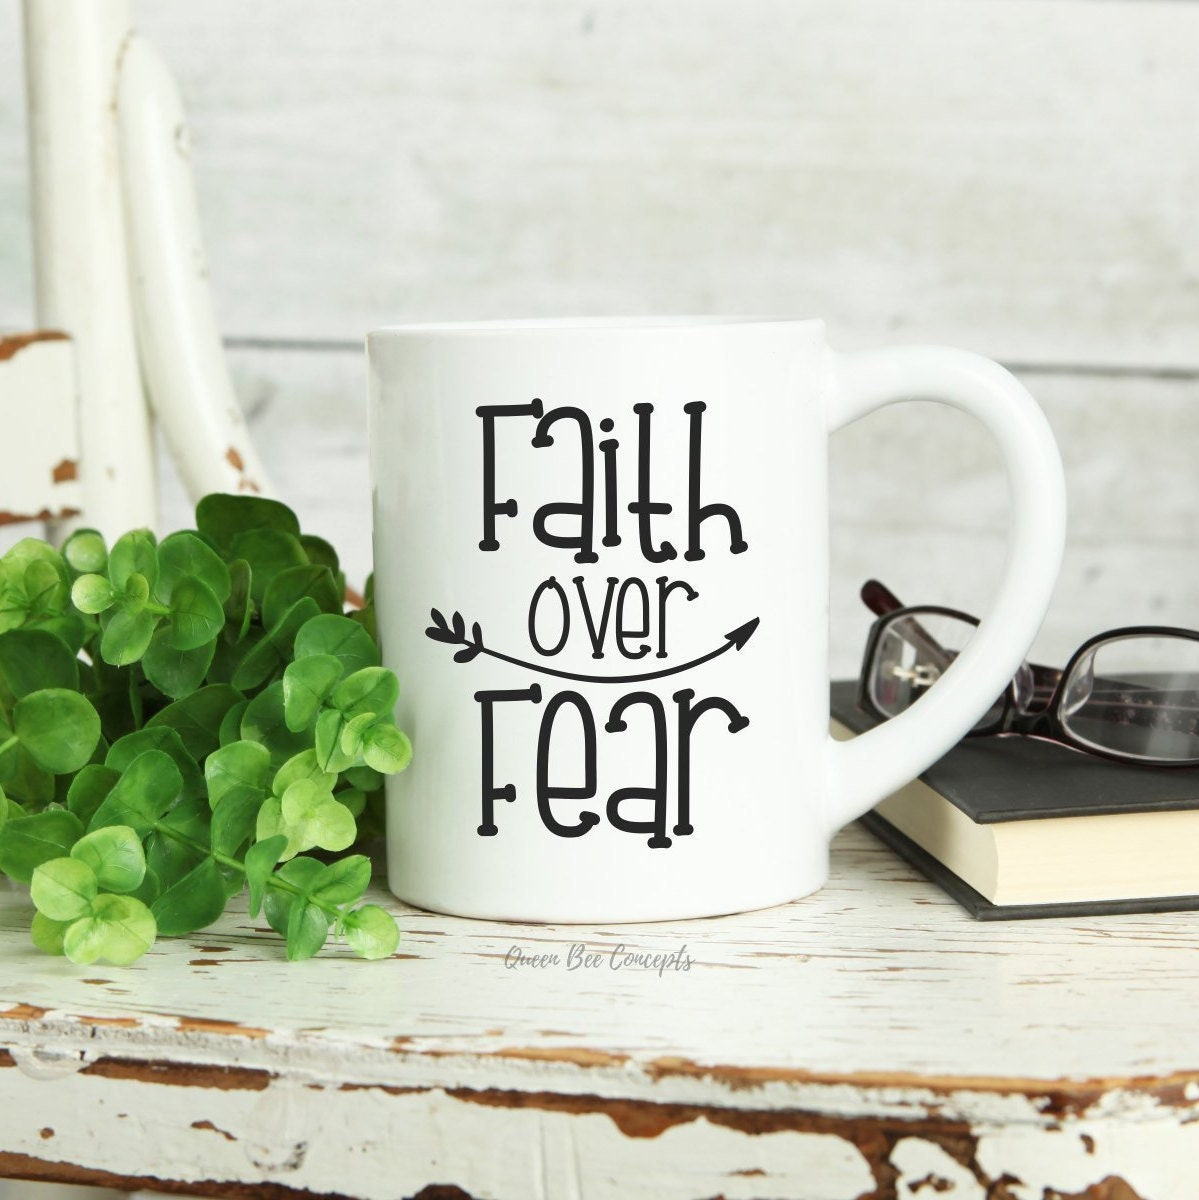 The Mug Coffee >> Faith Over Fear Ceramic Mug 11 Oz Coffee Mug Coffee Lover S